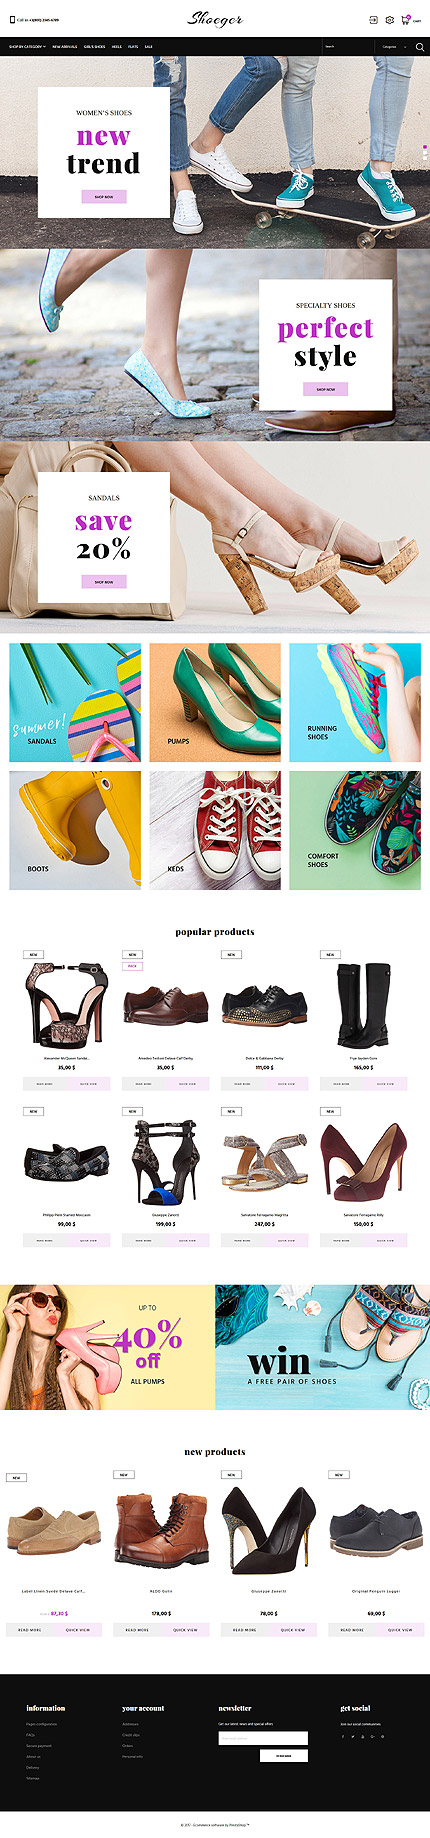 Fashion website inspirations at your coffee break? Browse for more PrestaShop #templates! // Regular price: $139 // Sources available: .PSD, .PHP, .TPL #Fashion #PrestaShop